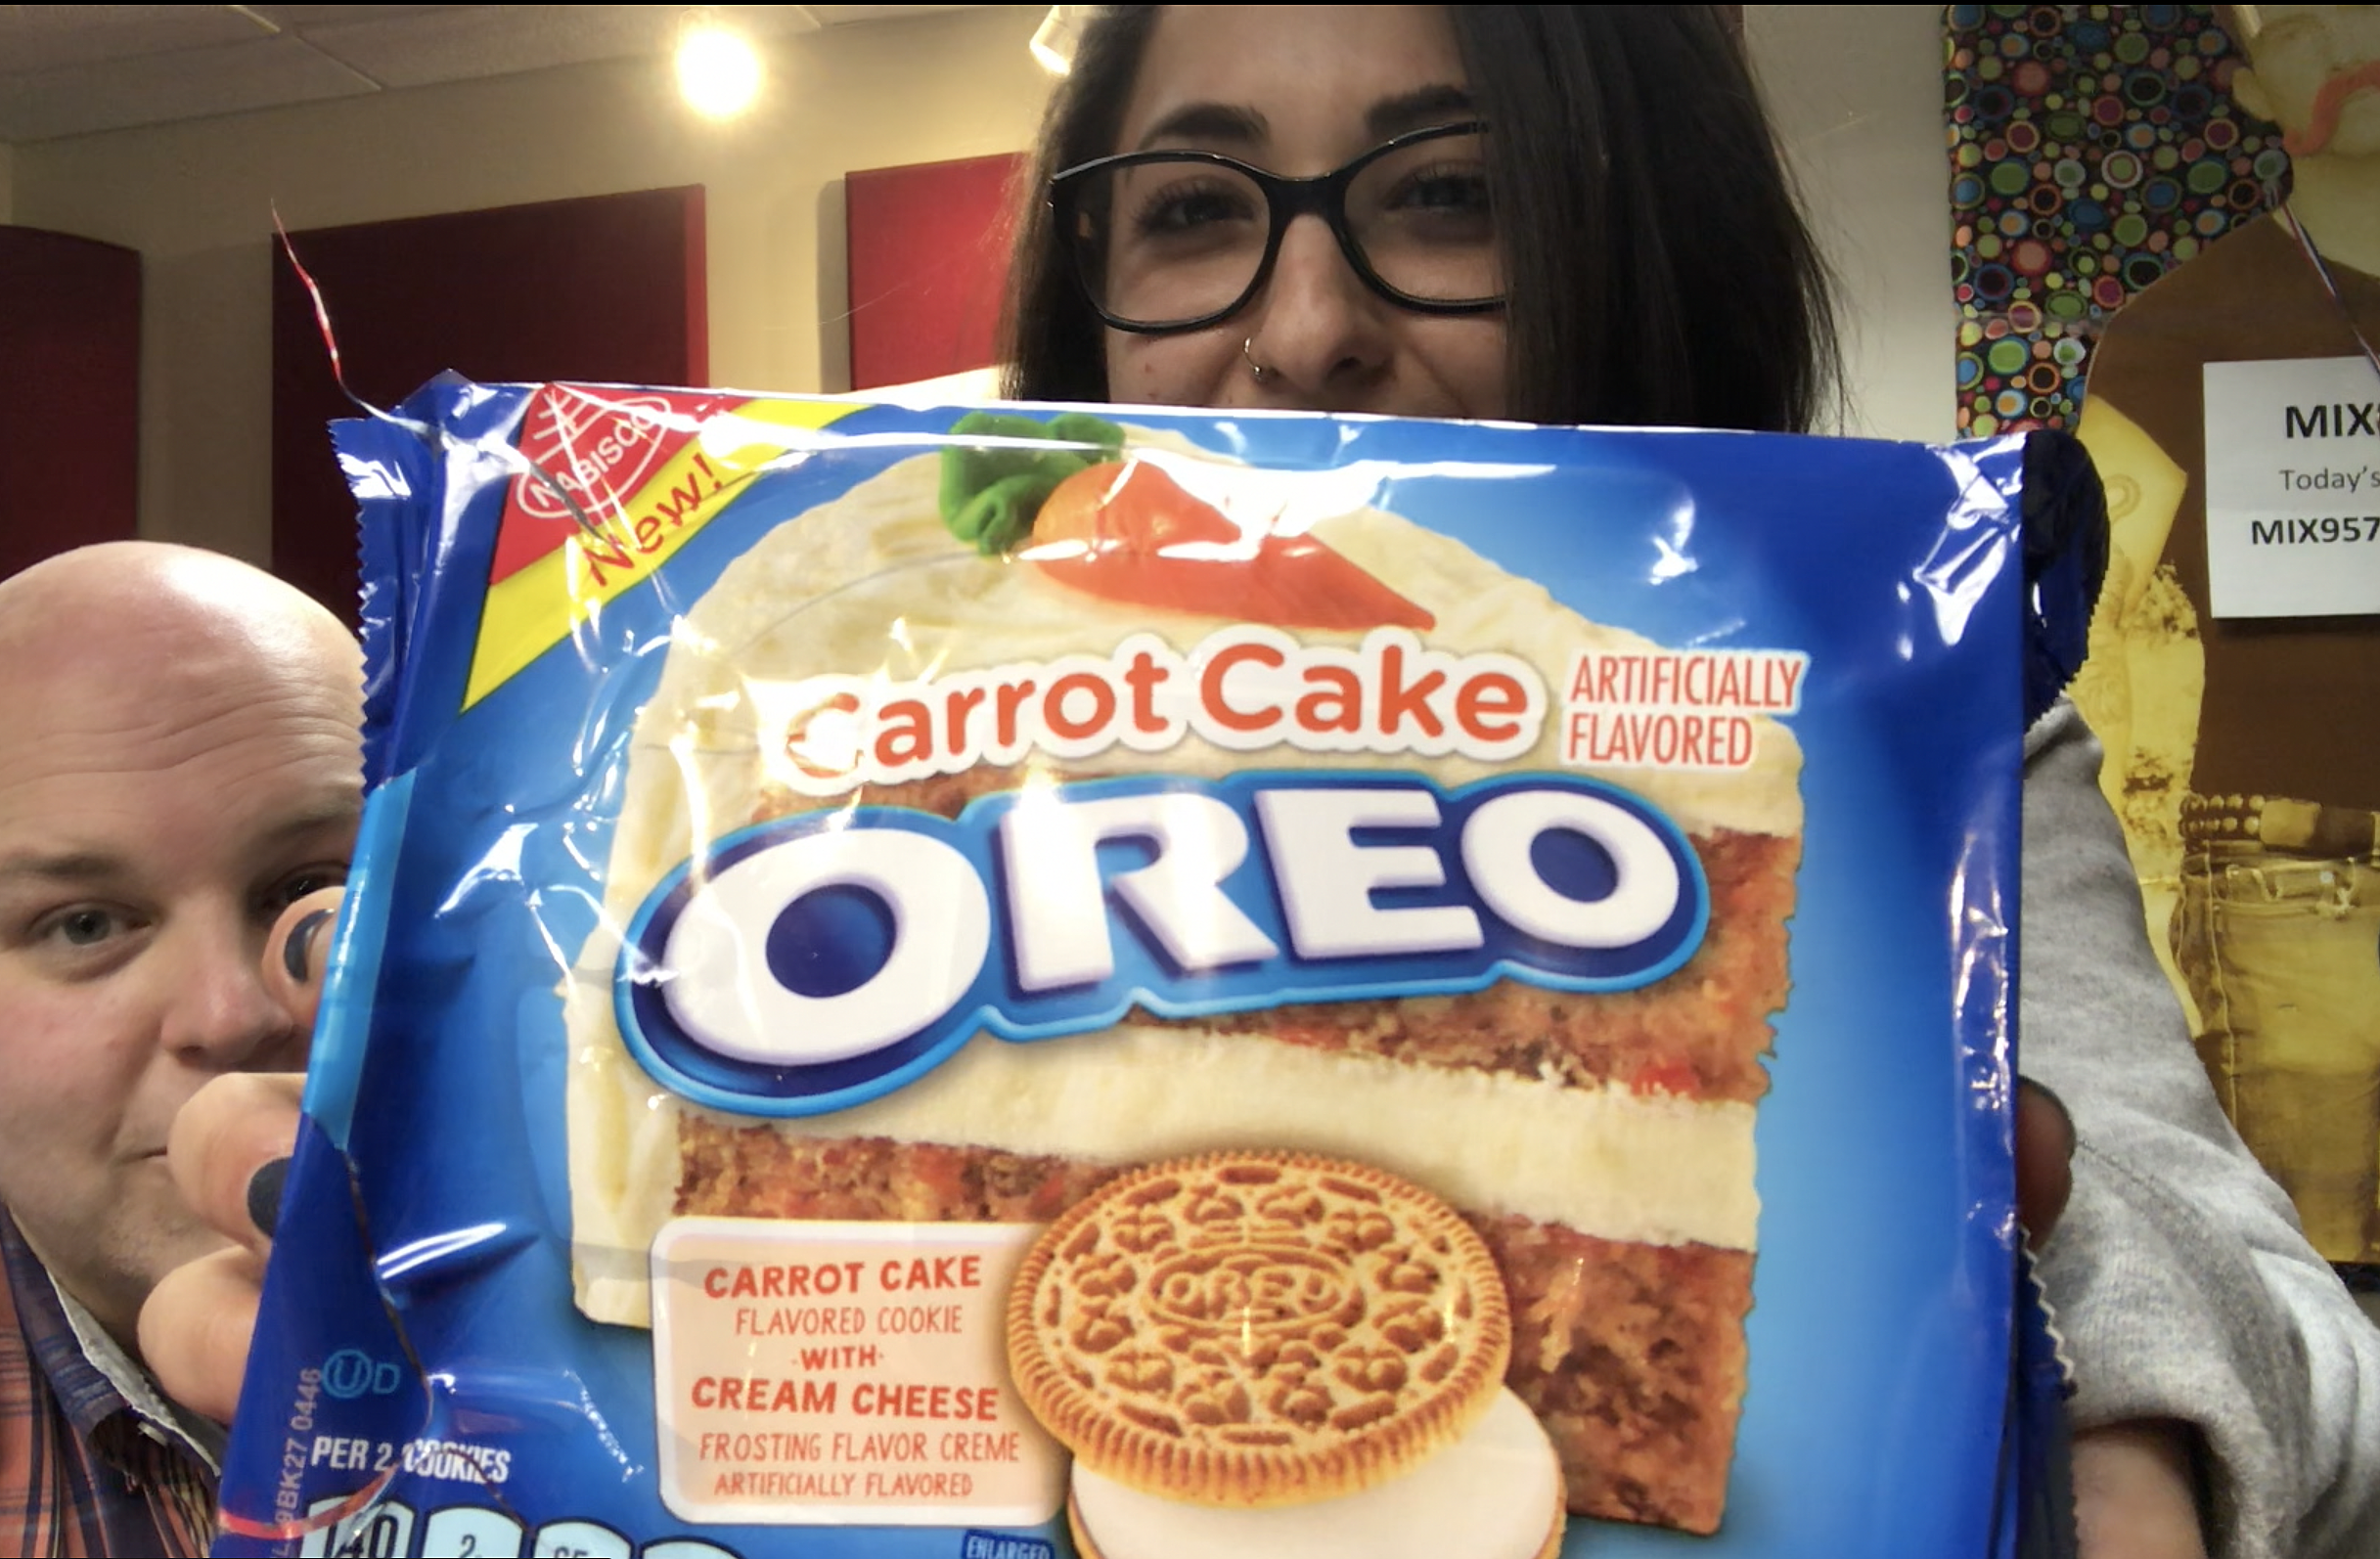 Can Carrot Cake Oreos Really Be As Good As Carrot Cake Video